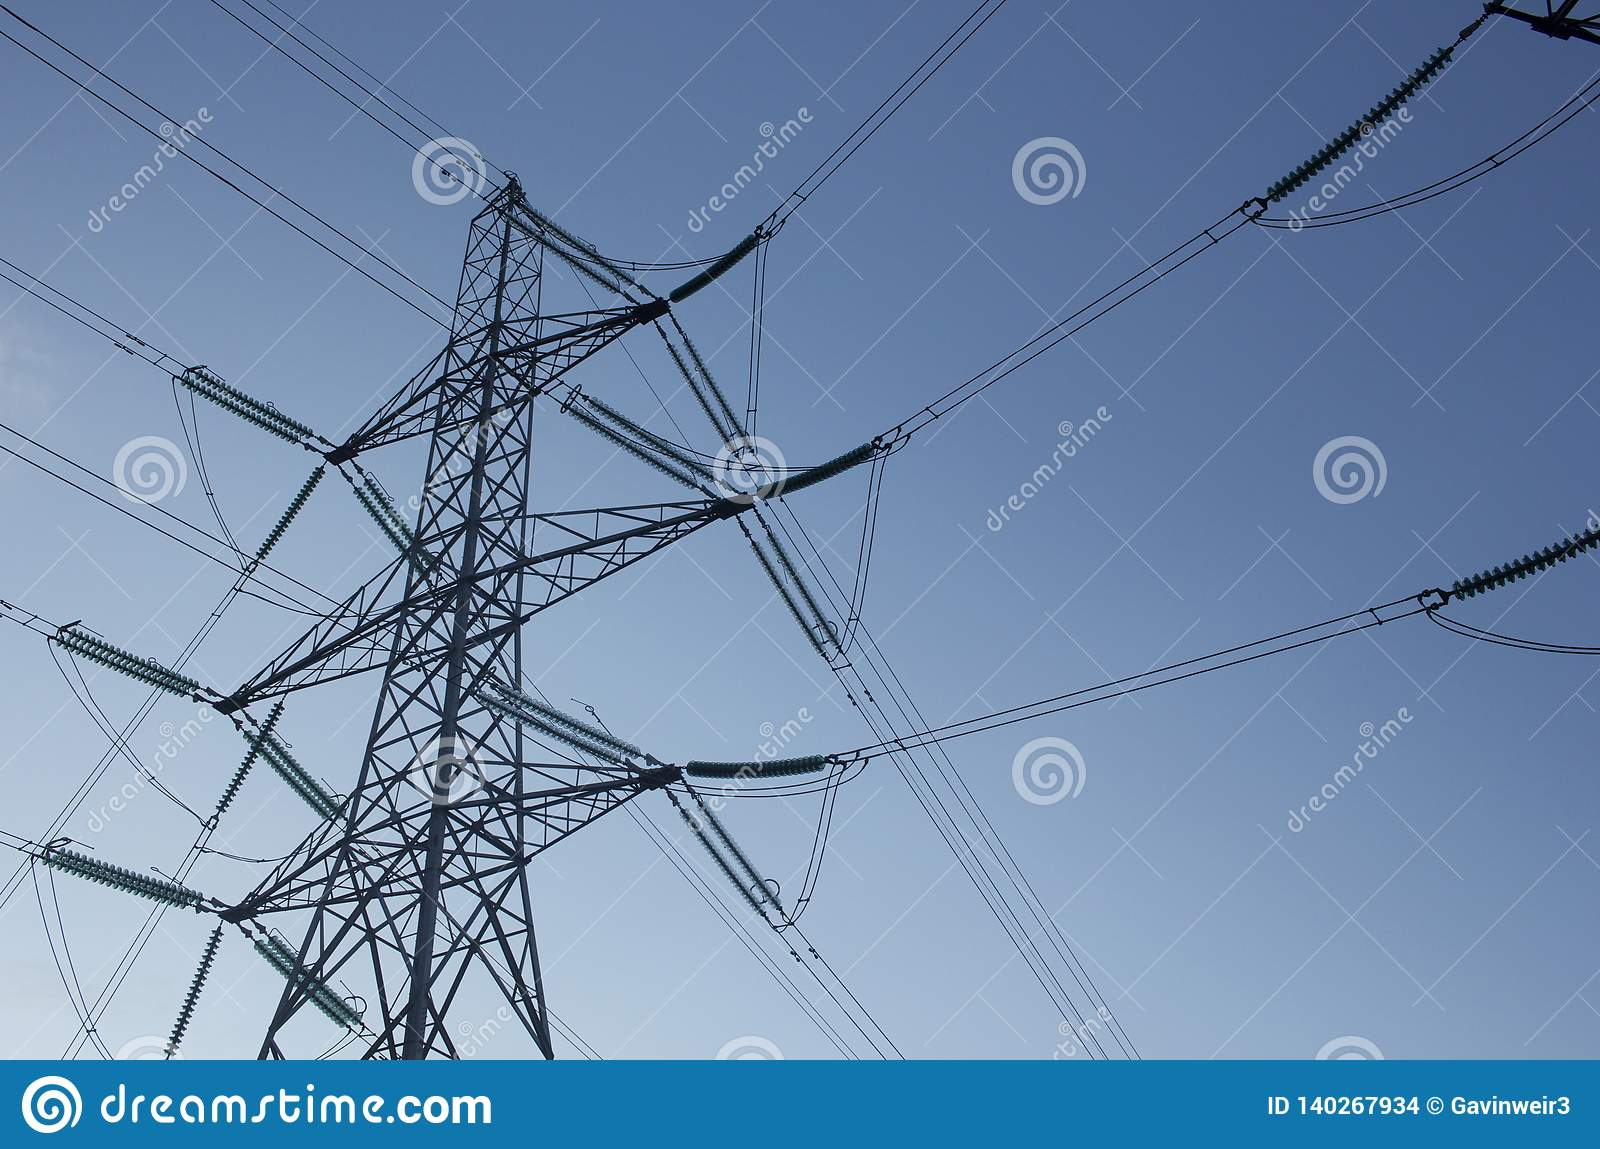 Power supply pylons against a blue sky